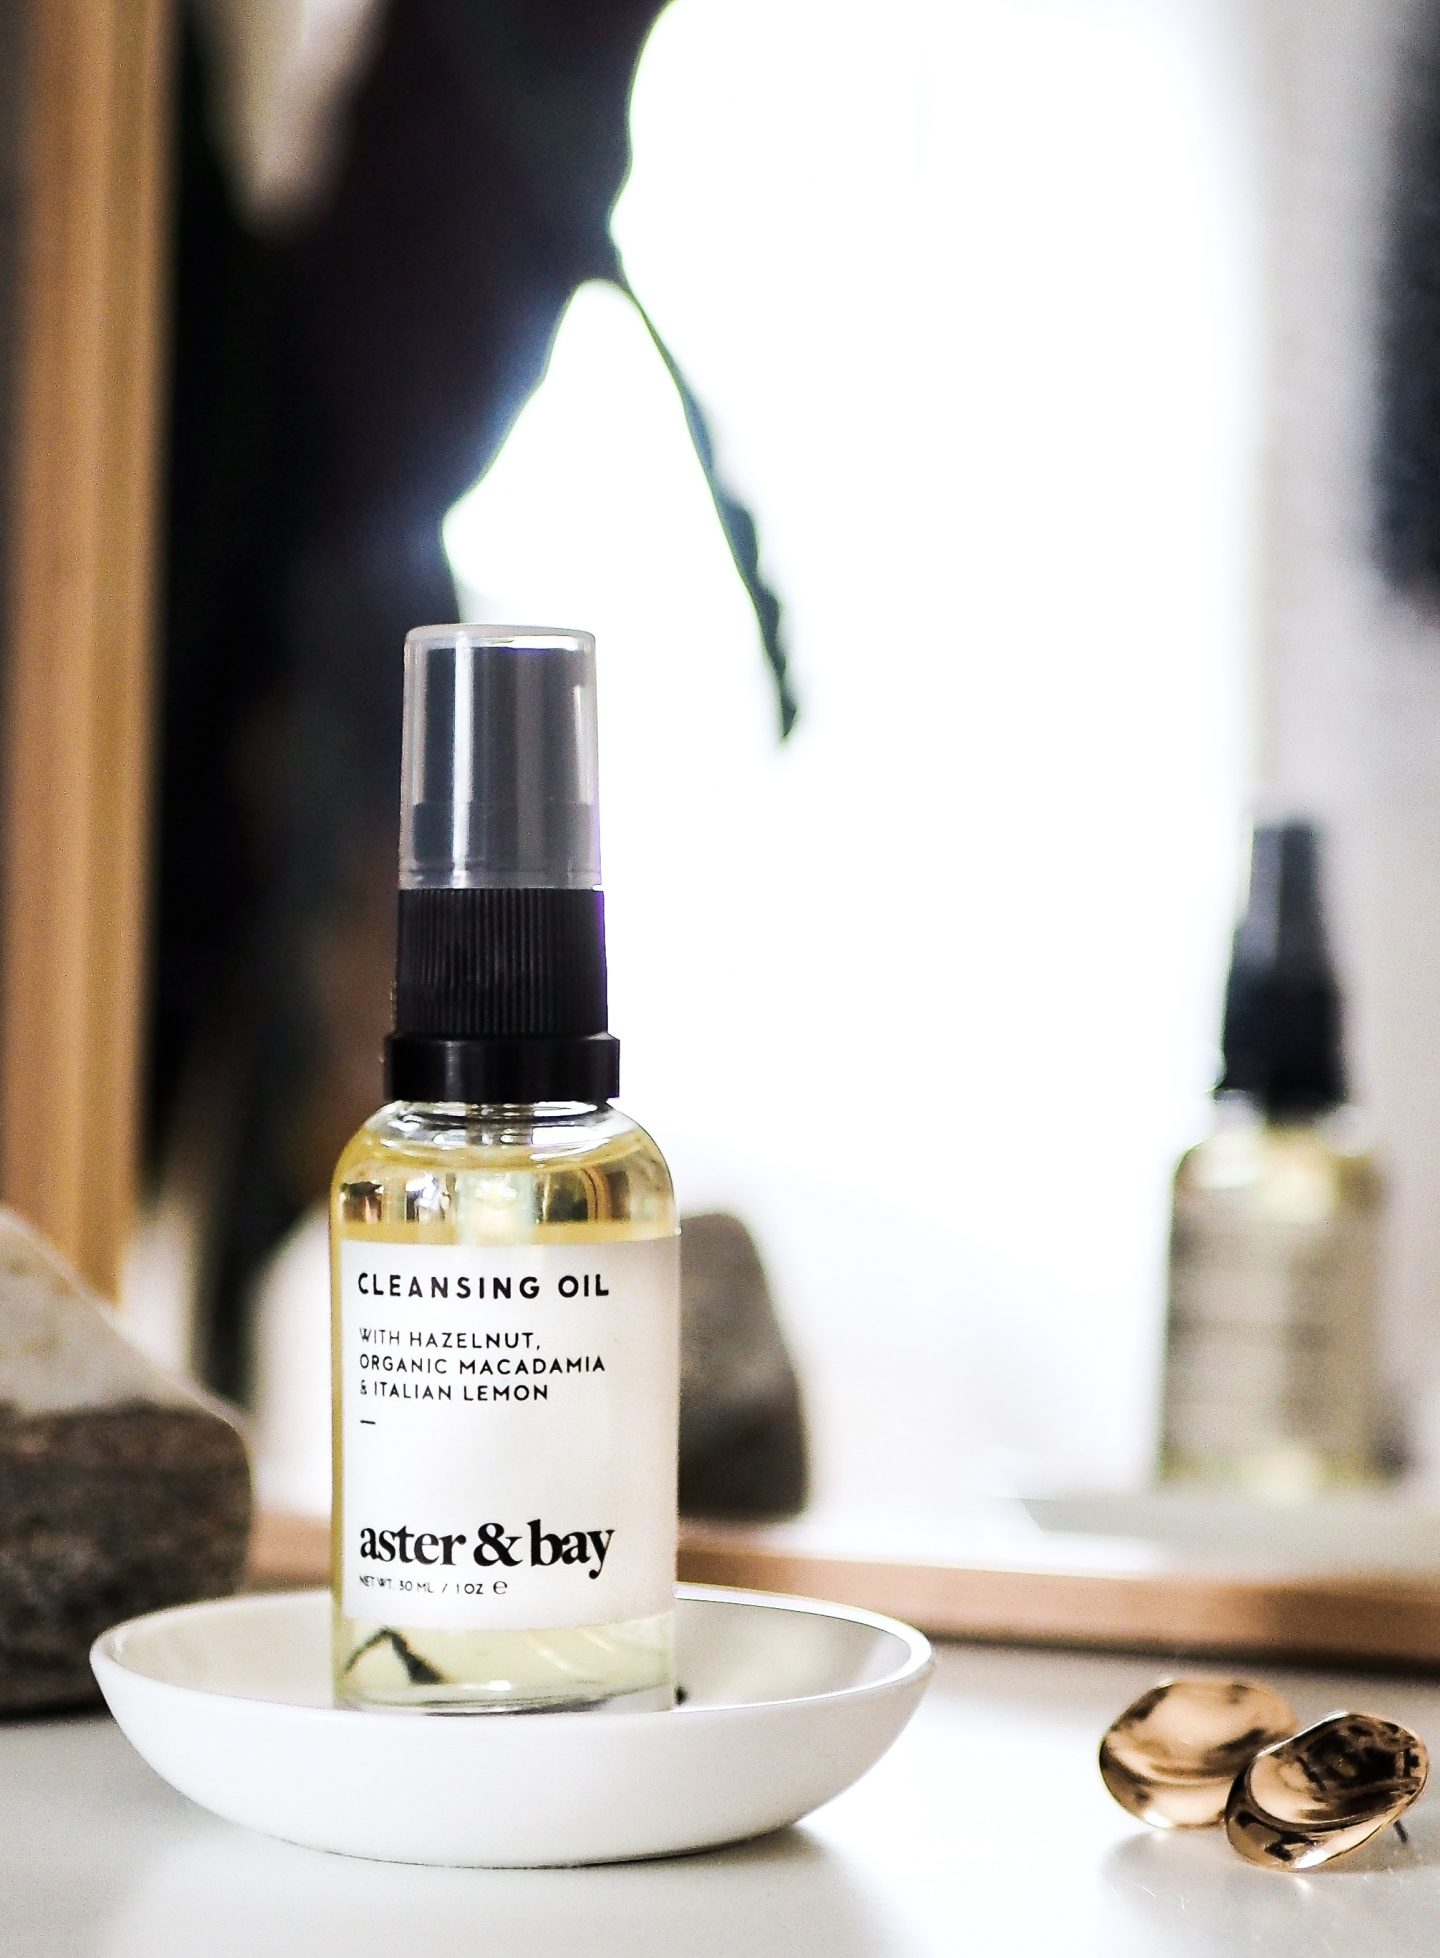 Aster & Bay Cleansing Oil (yes, even for you oily types!)